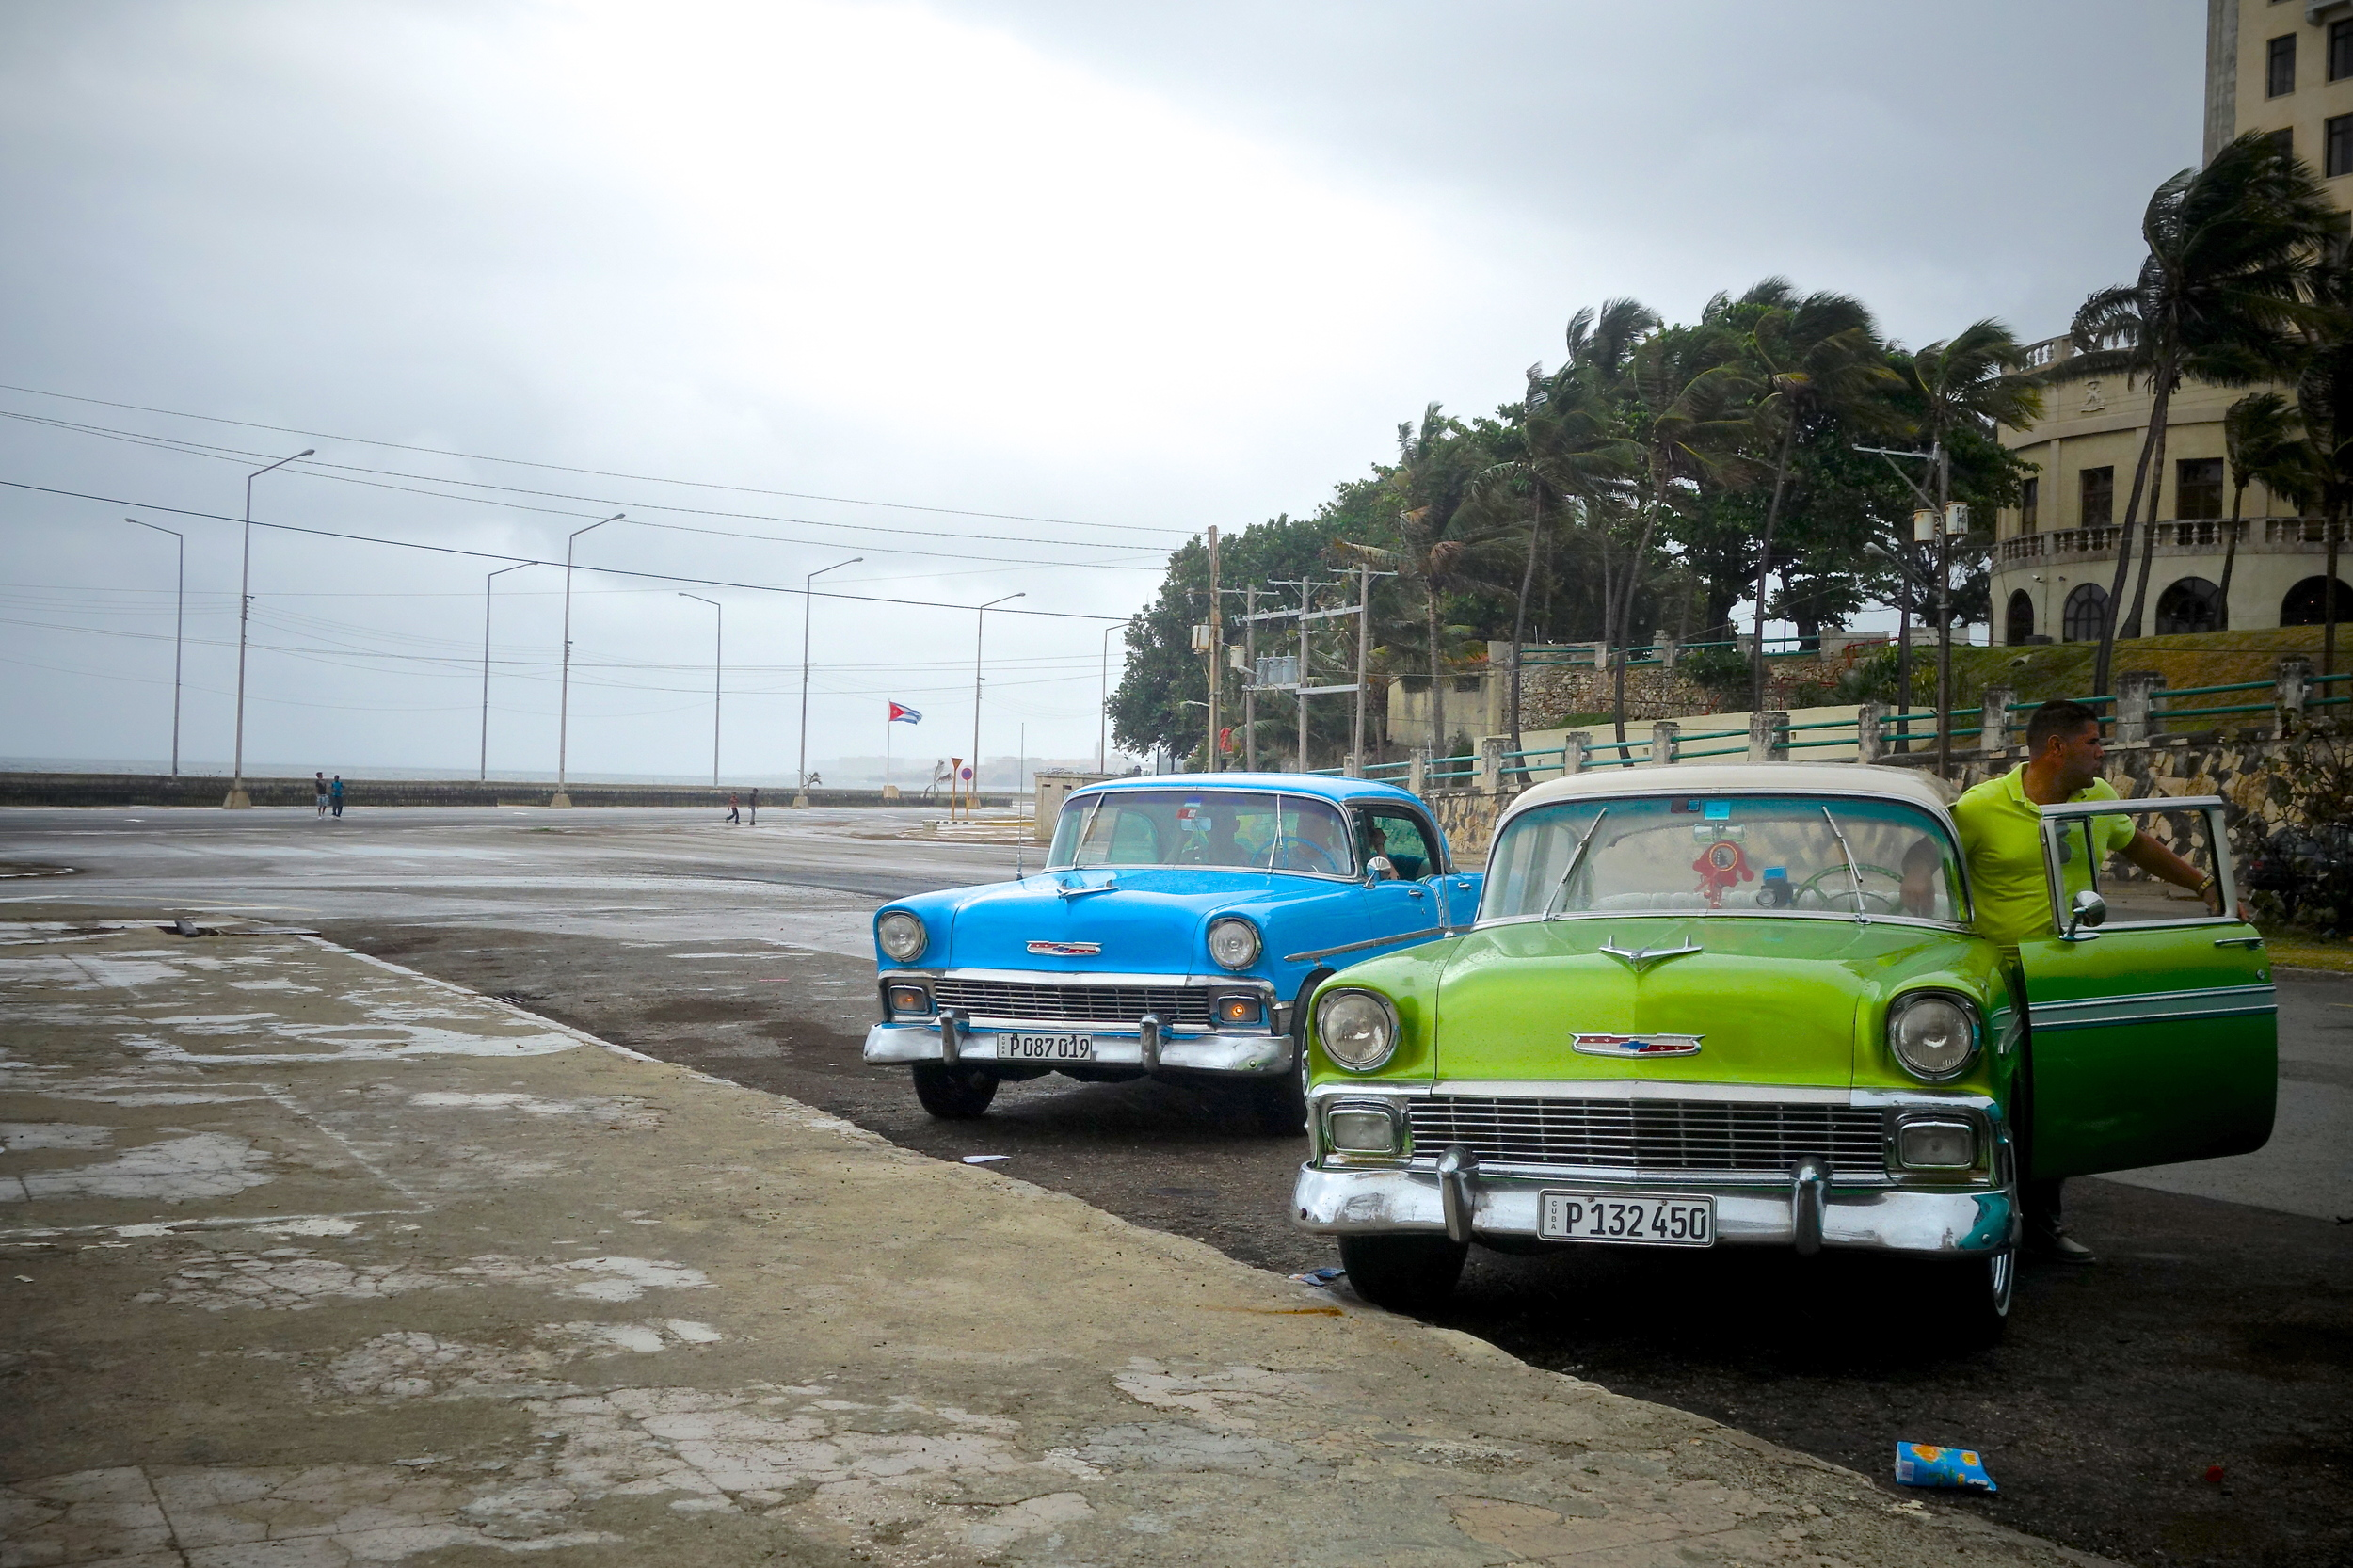 We stopped near the Malecon, a seawall along the Havana coastline, to see some of the historic hotels that overlook the Atlantic north toward the U.S.